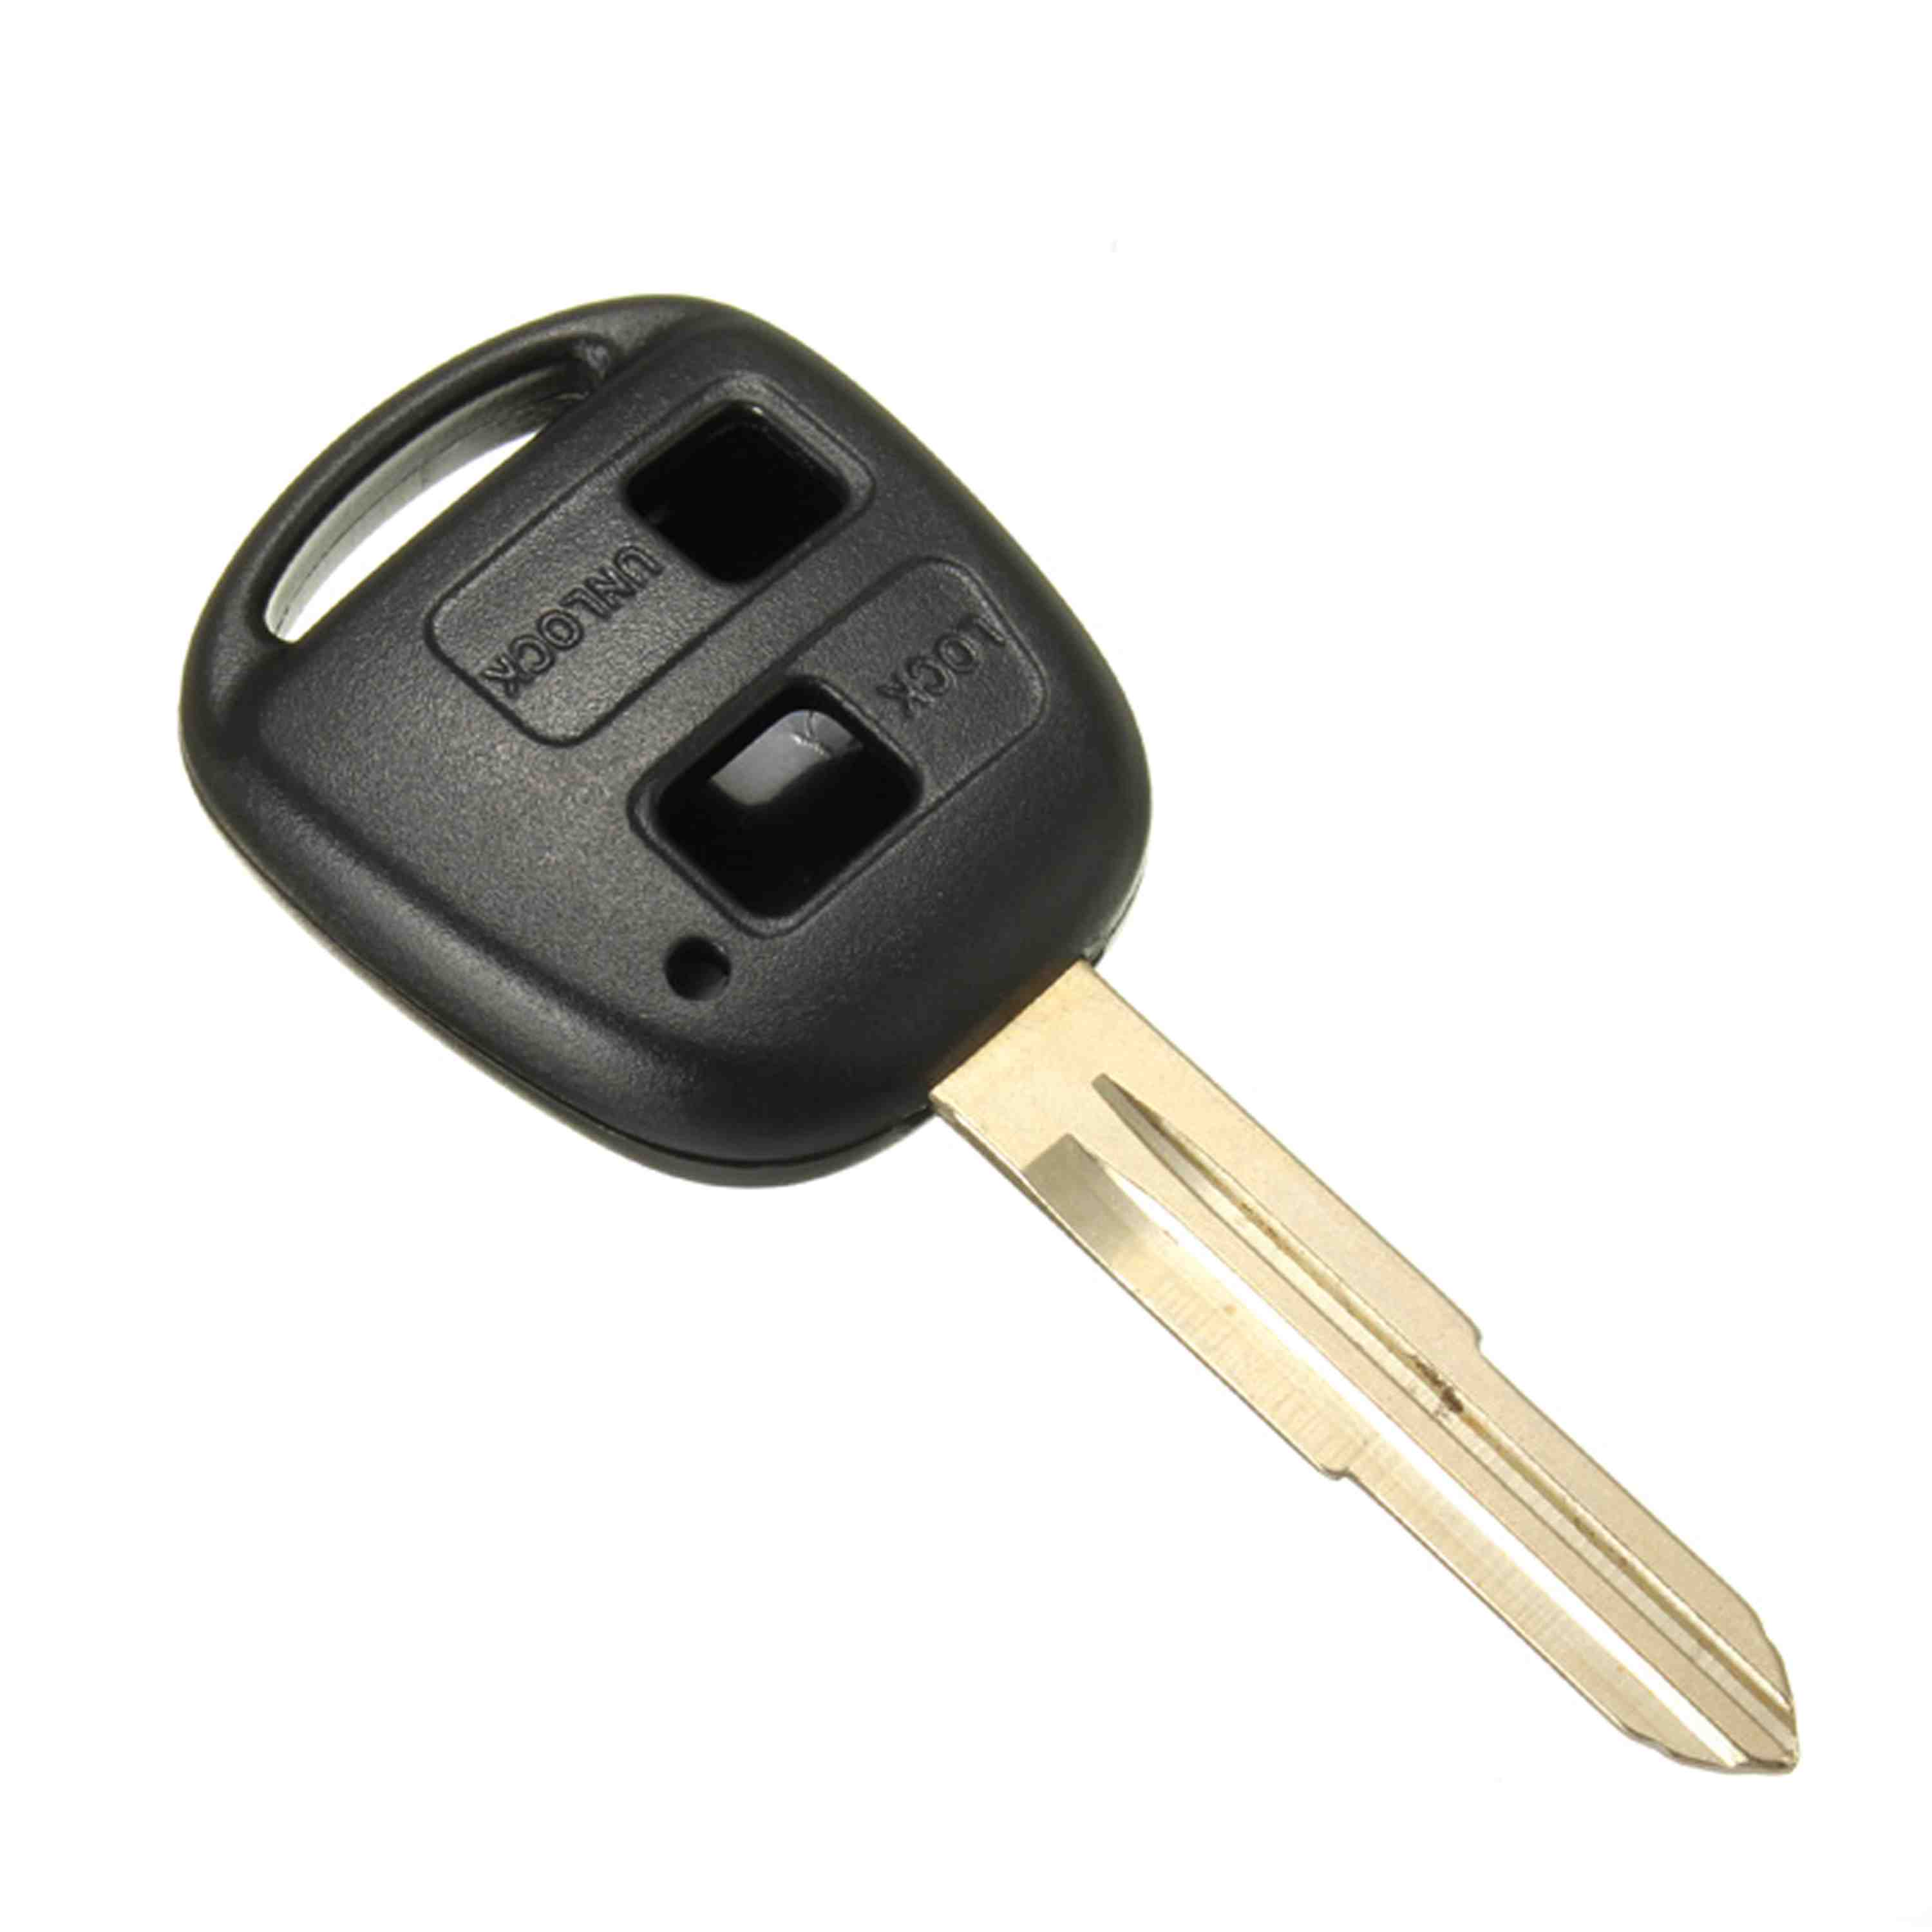 2 button remote key case shell uncut blade for toyota yaris corolla celica camry in key case for car from automobiles motorcycles on aliexpress com